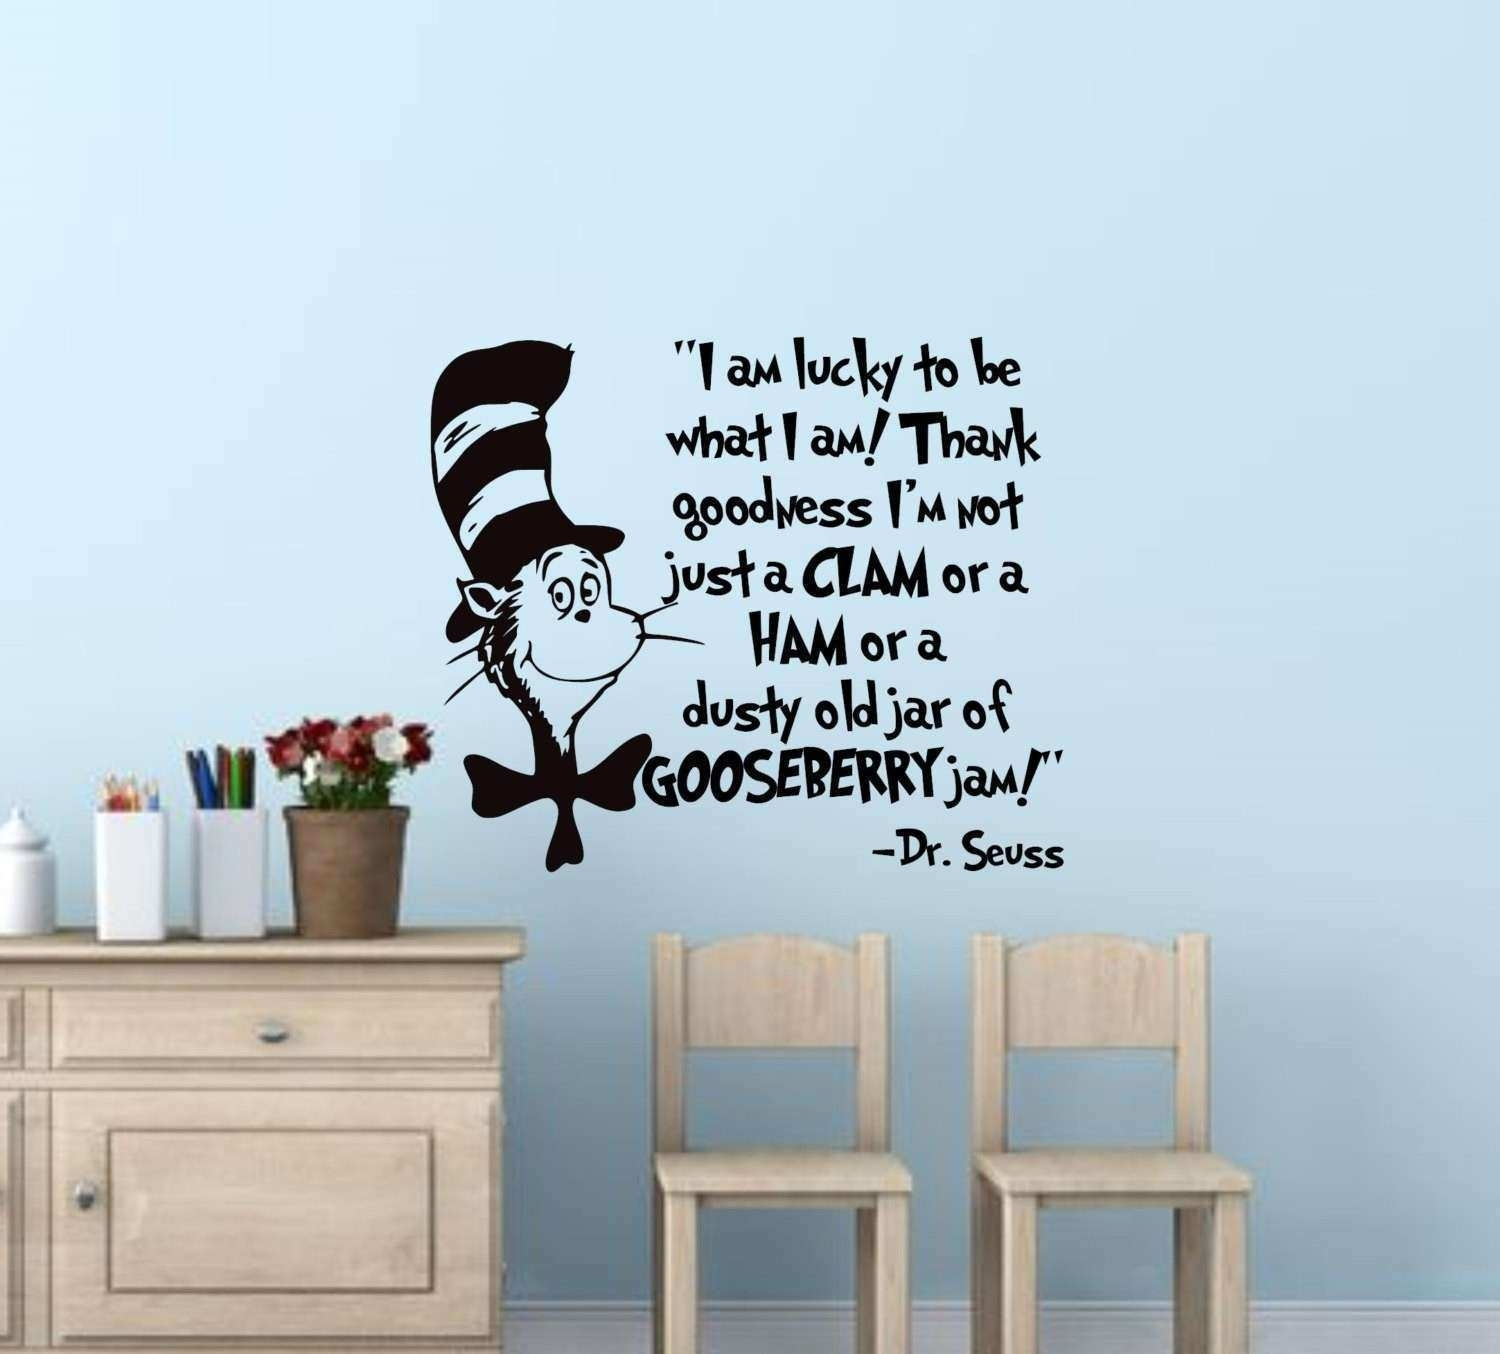 Dr Seuss Wall Art Quotes New I Am Lucky To Be What I Am Dr Seuss Throughout Dr Seuss Wall Art (View 2 of 20)